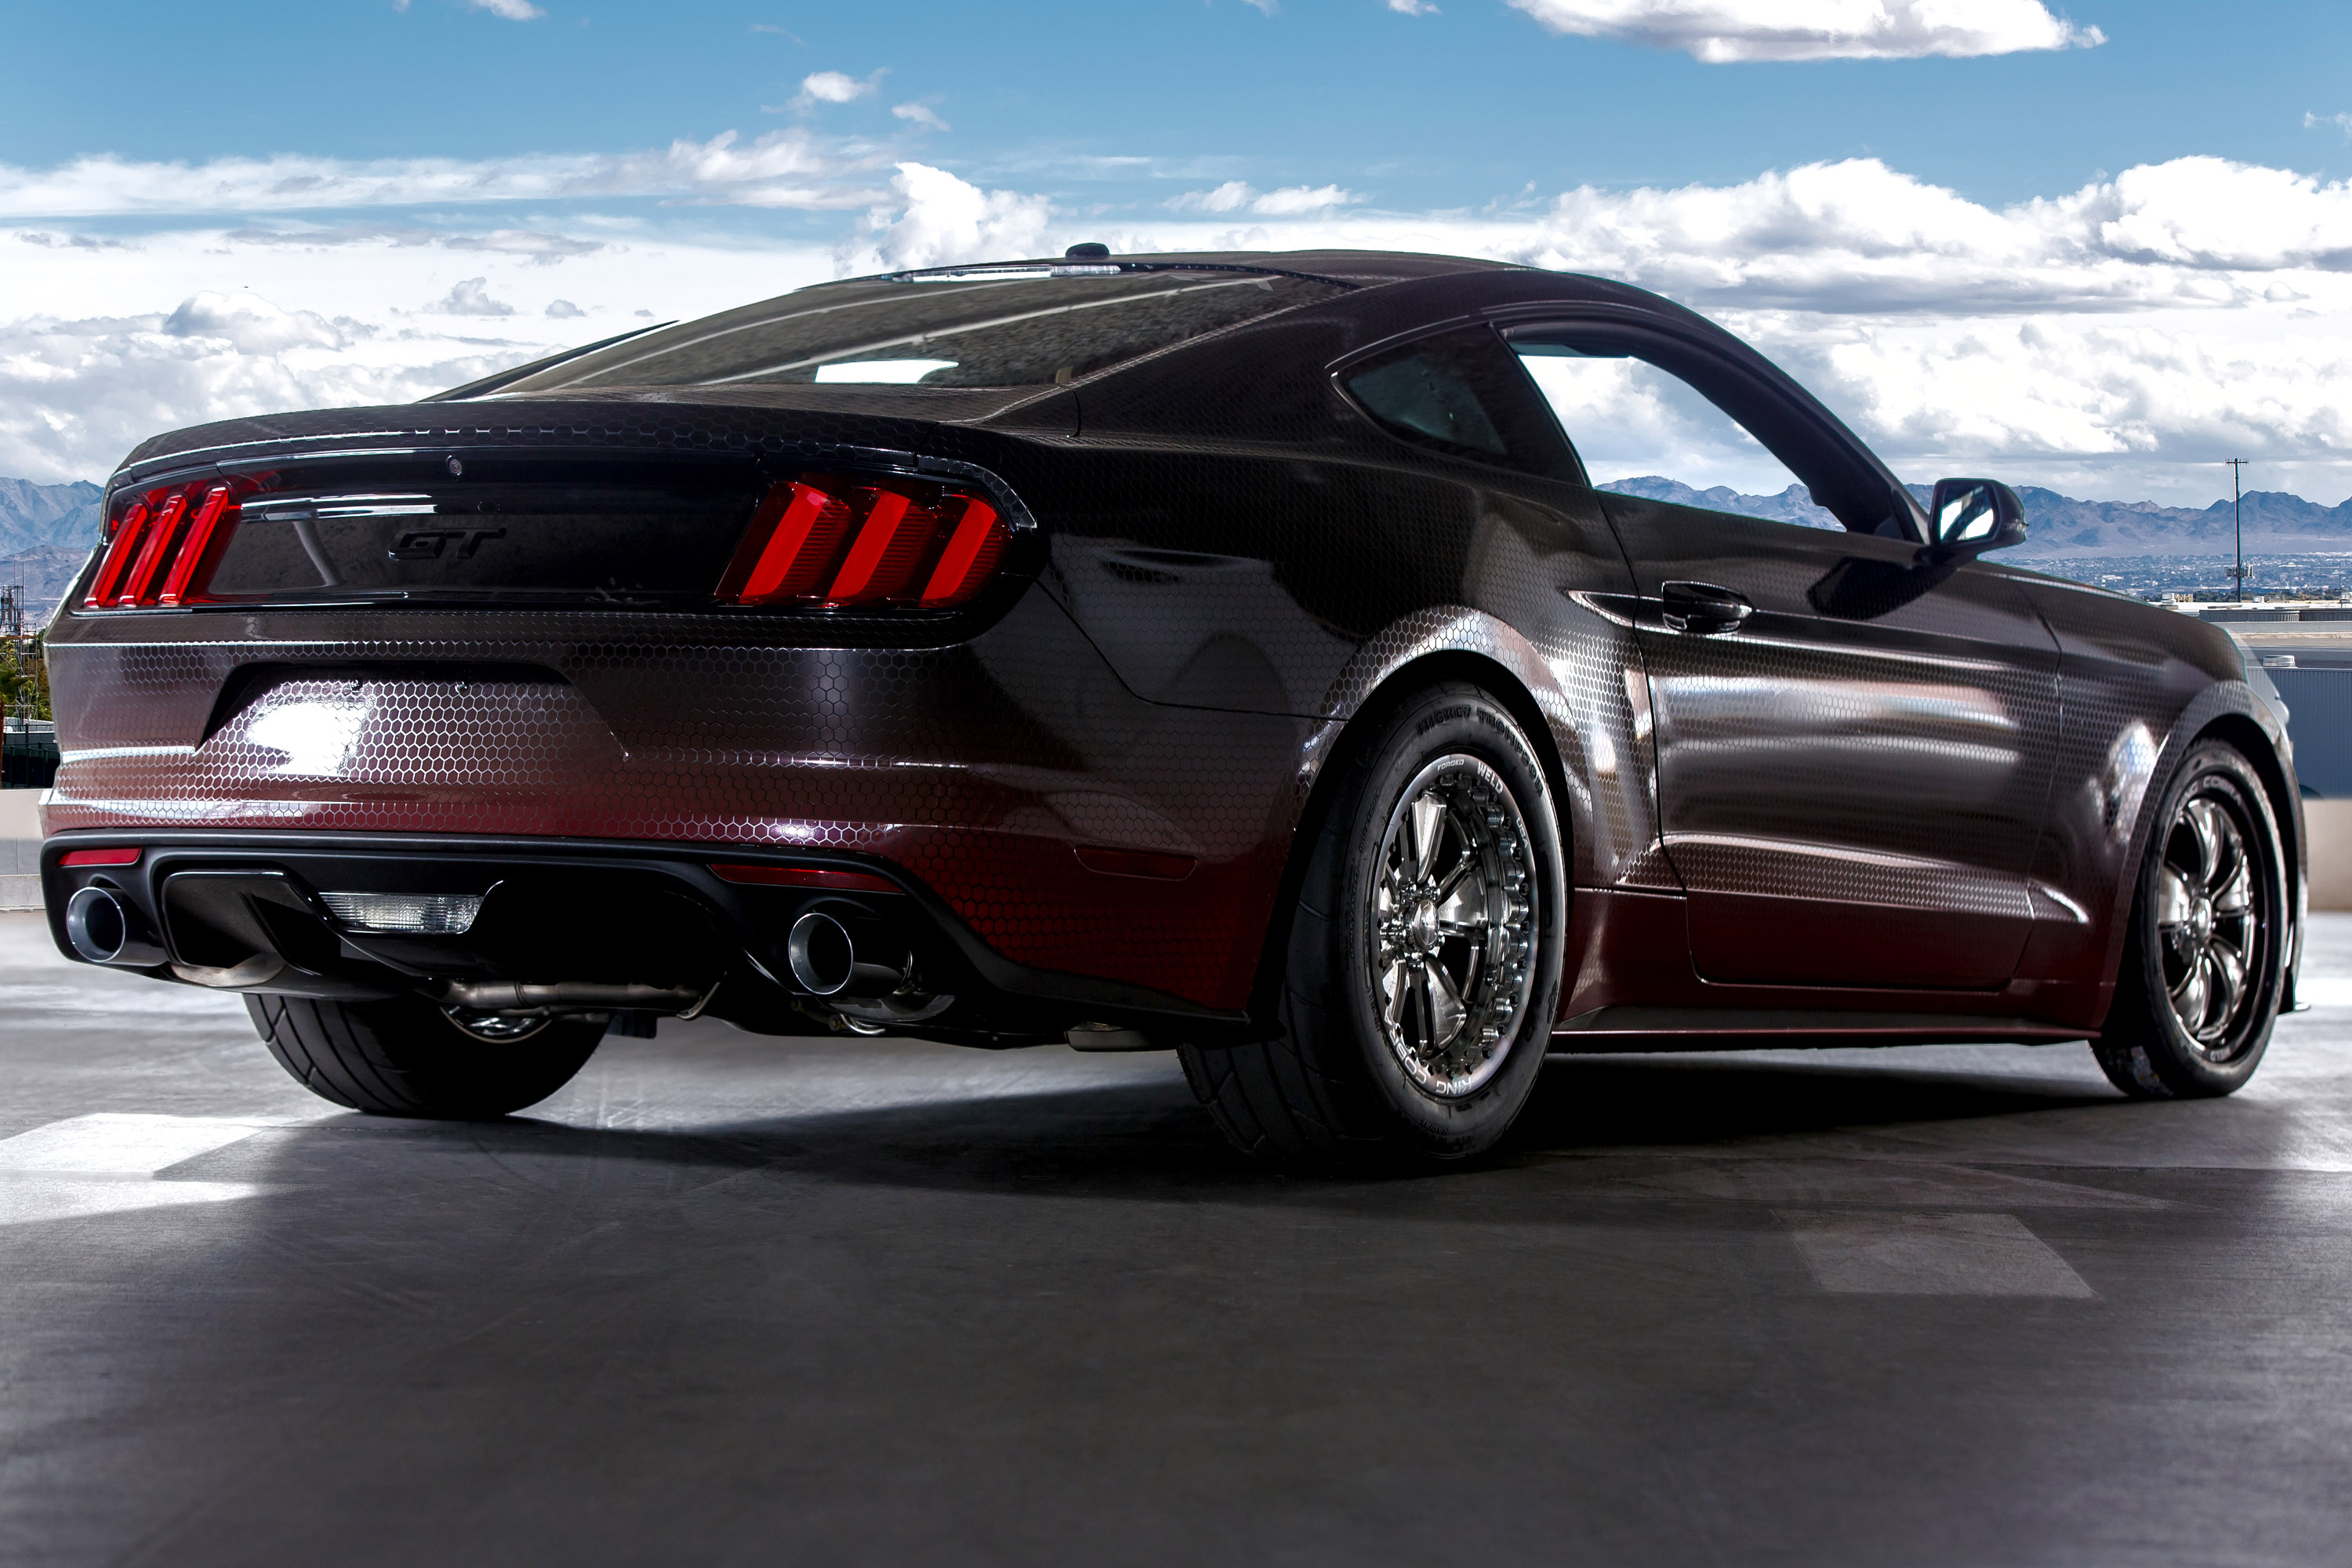 2015 Ford Mustang GT photo - 3